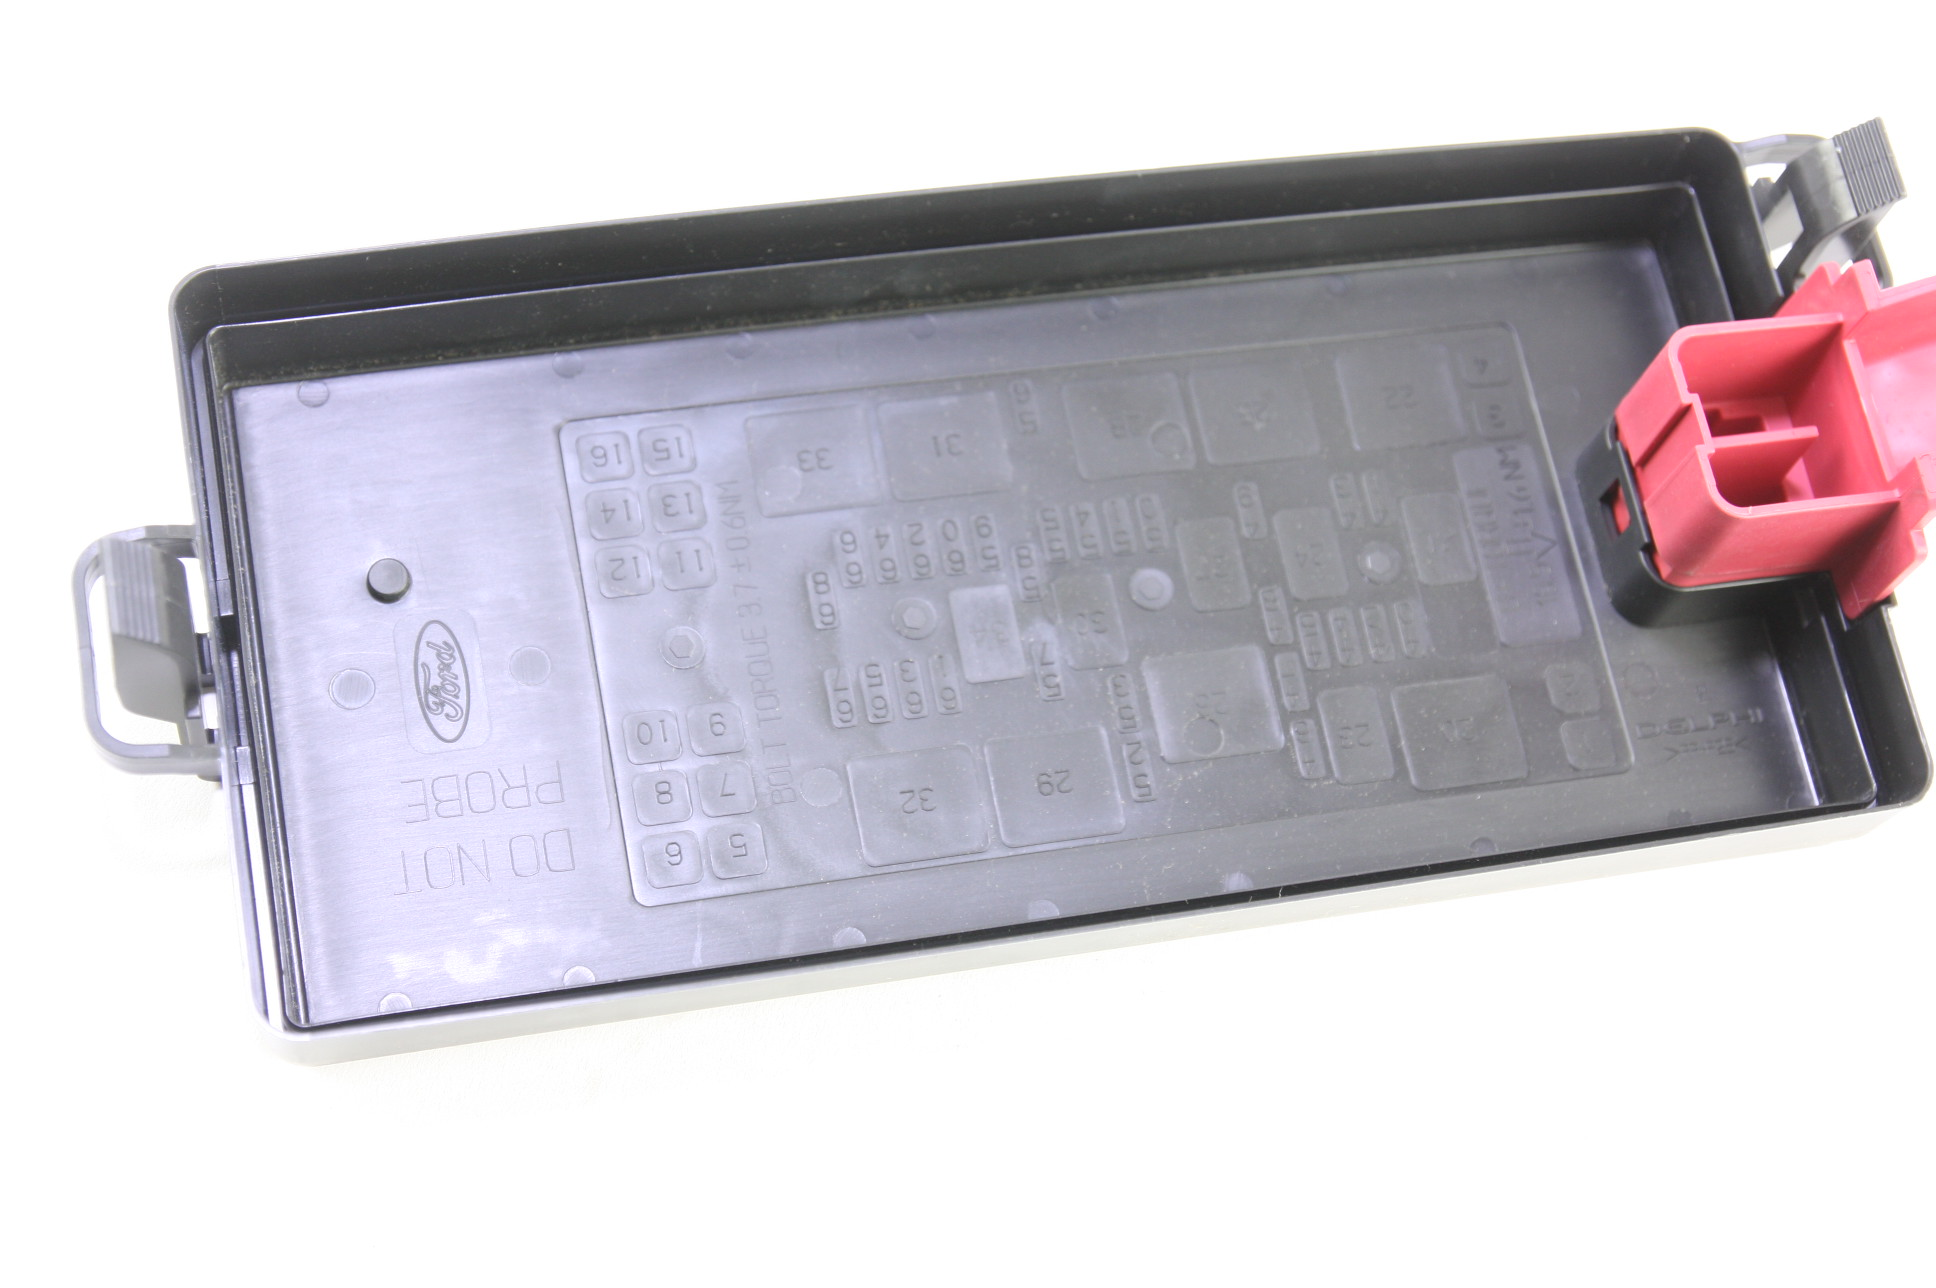 New Oem 6r3z14a003a Ford Engine Fuse Box Panel Cover Cap 05 09 Mustang Nip